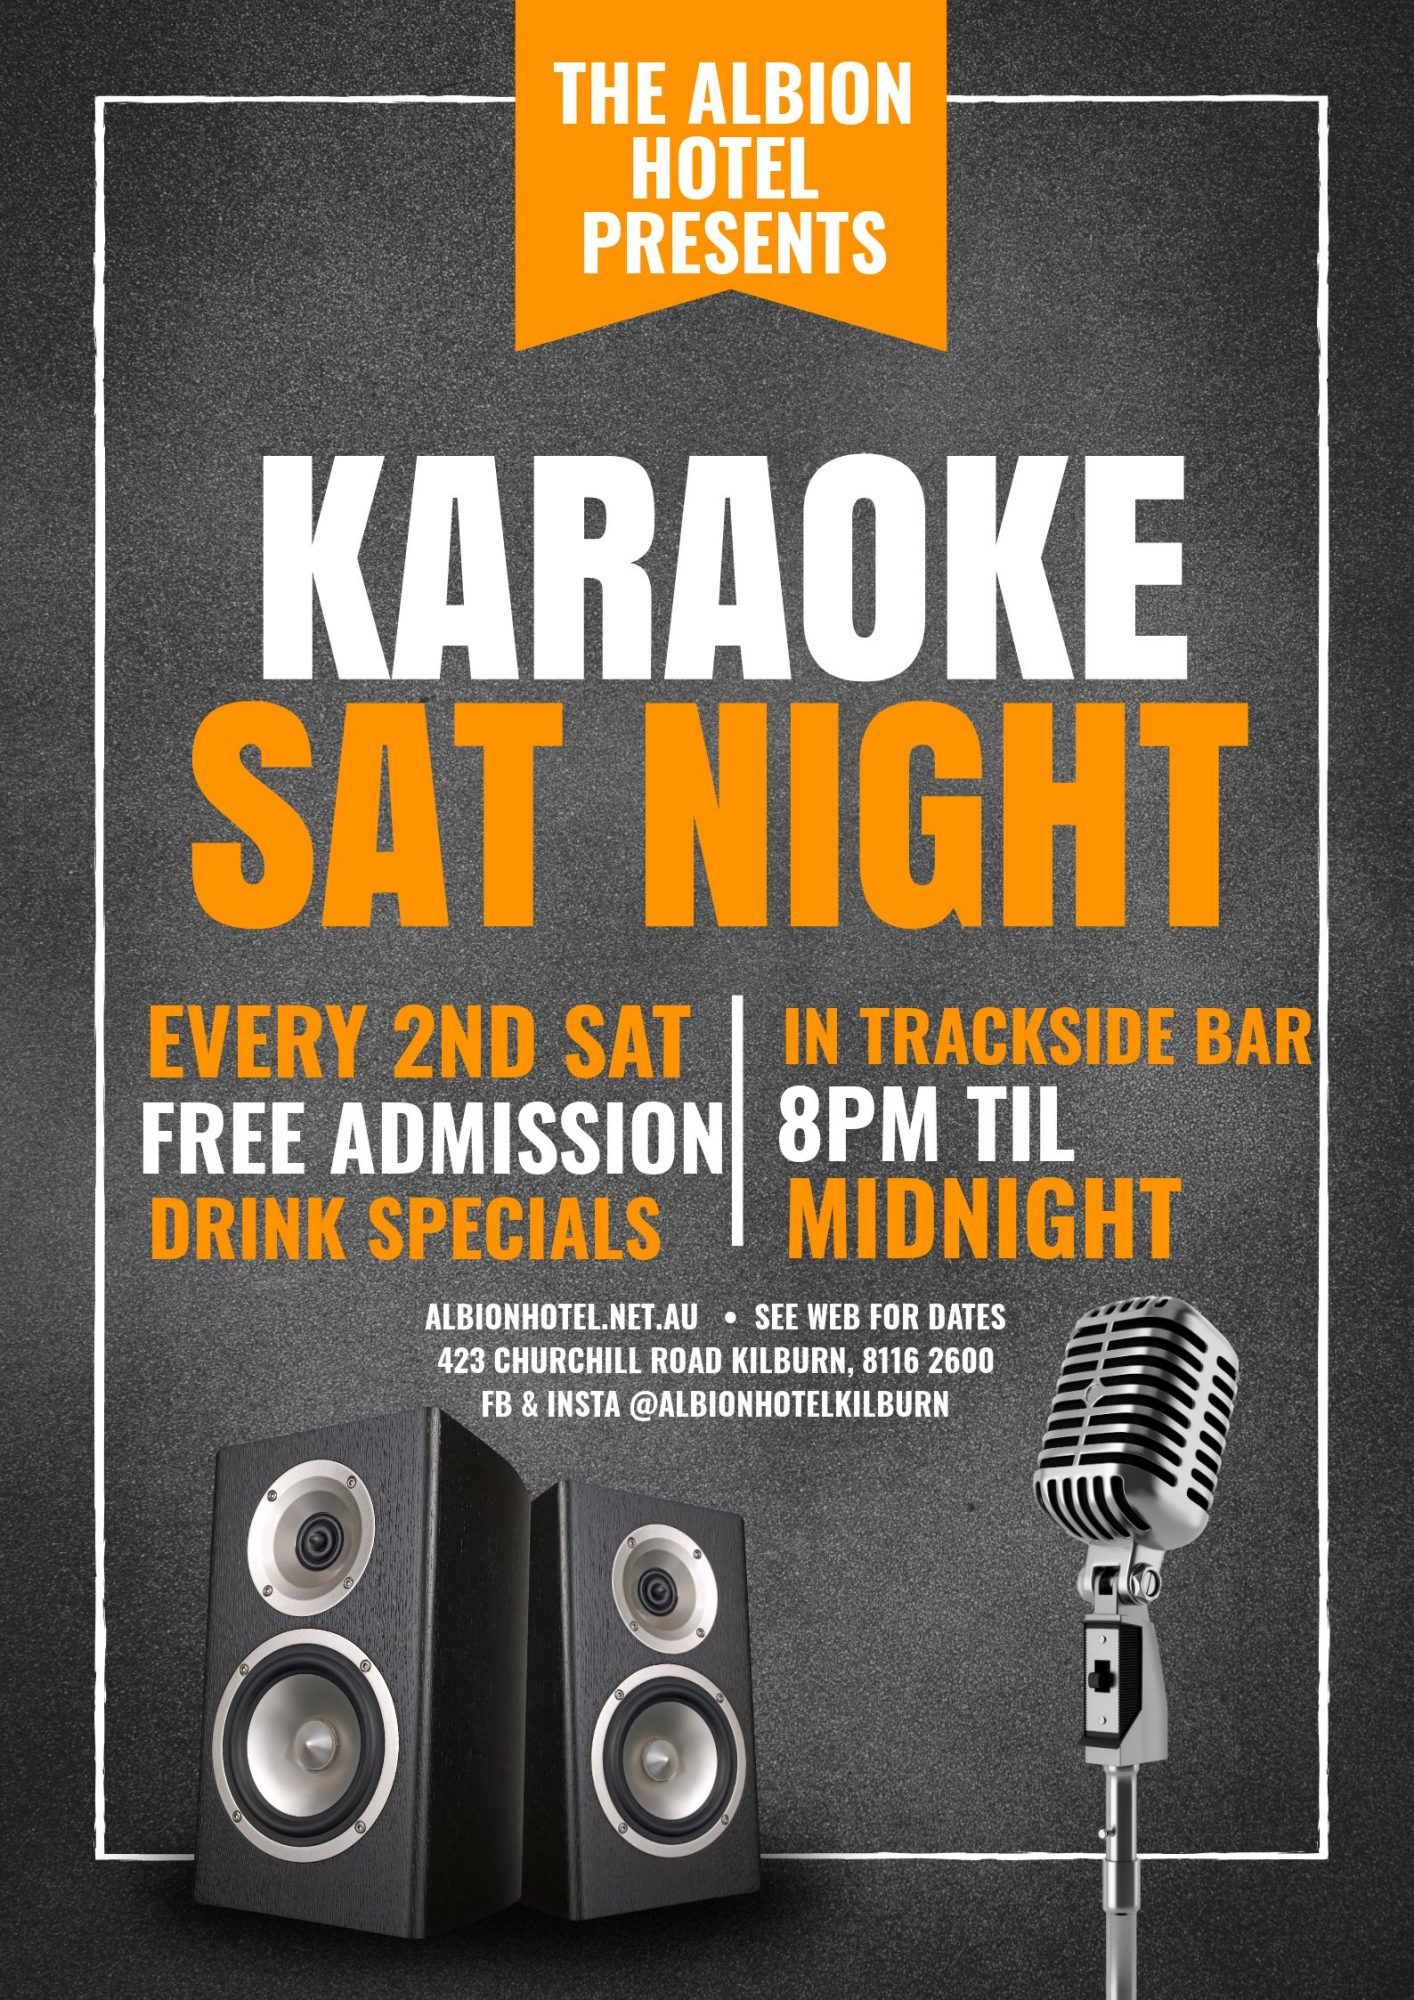 Karaoke – LIVE FROM 8PM